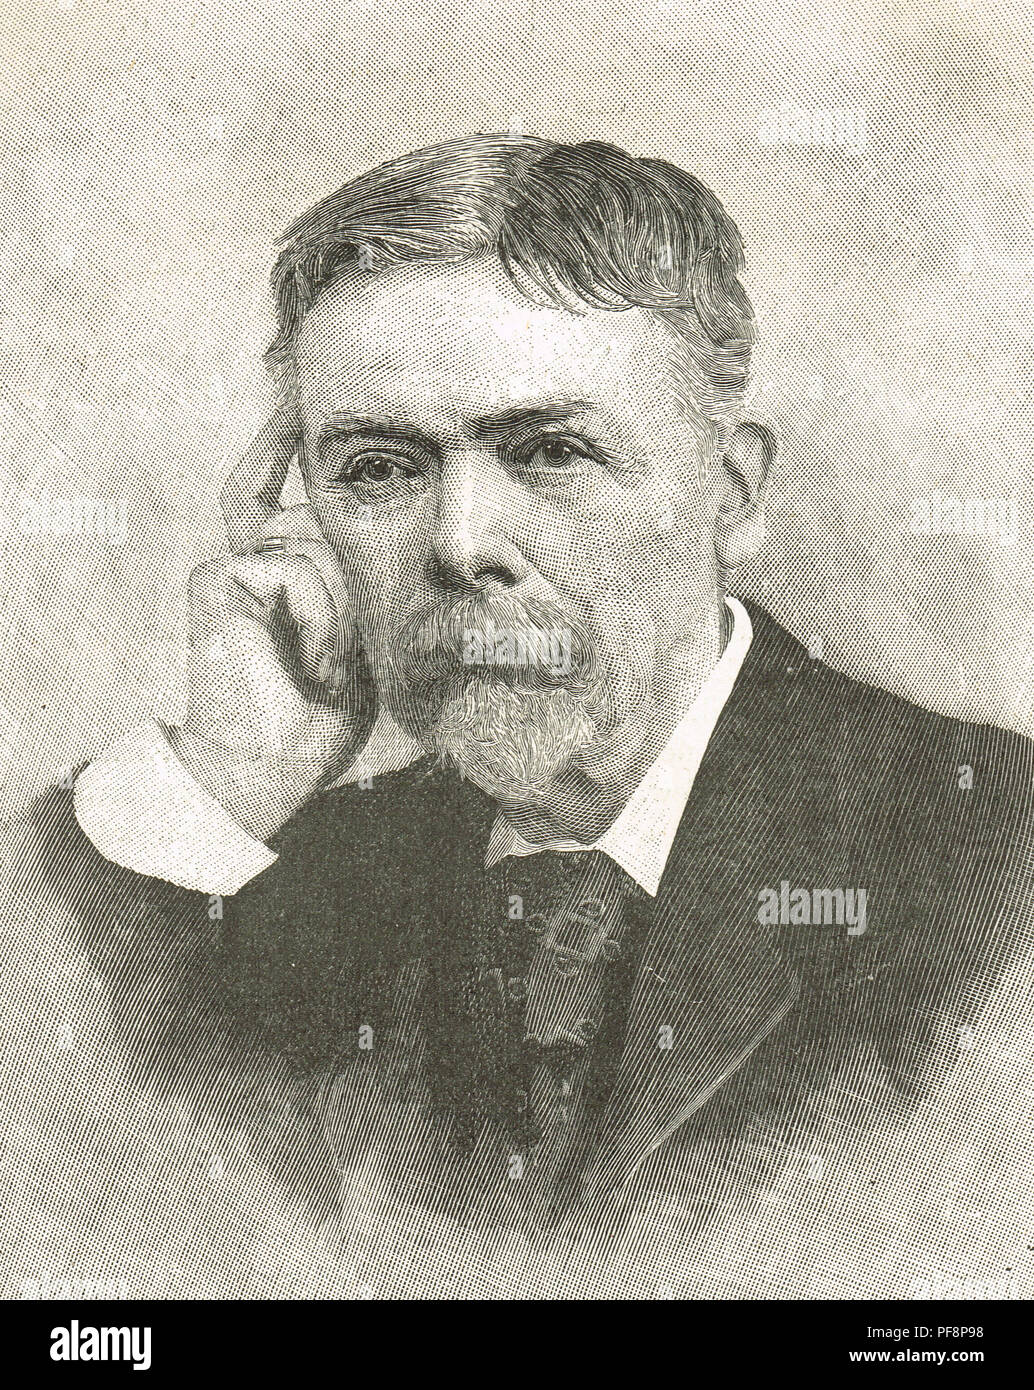 George du Maurier, Franco-British cartoonist, known for his drawings in Punch, author of the novel Trilby, who created the character Svengali - Stock Image